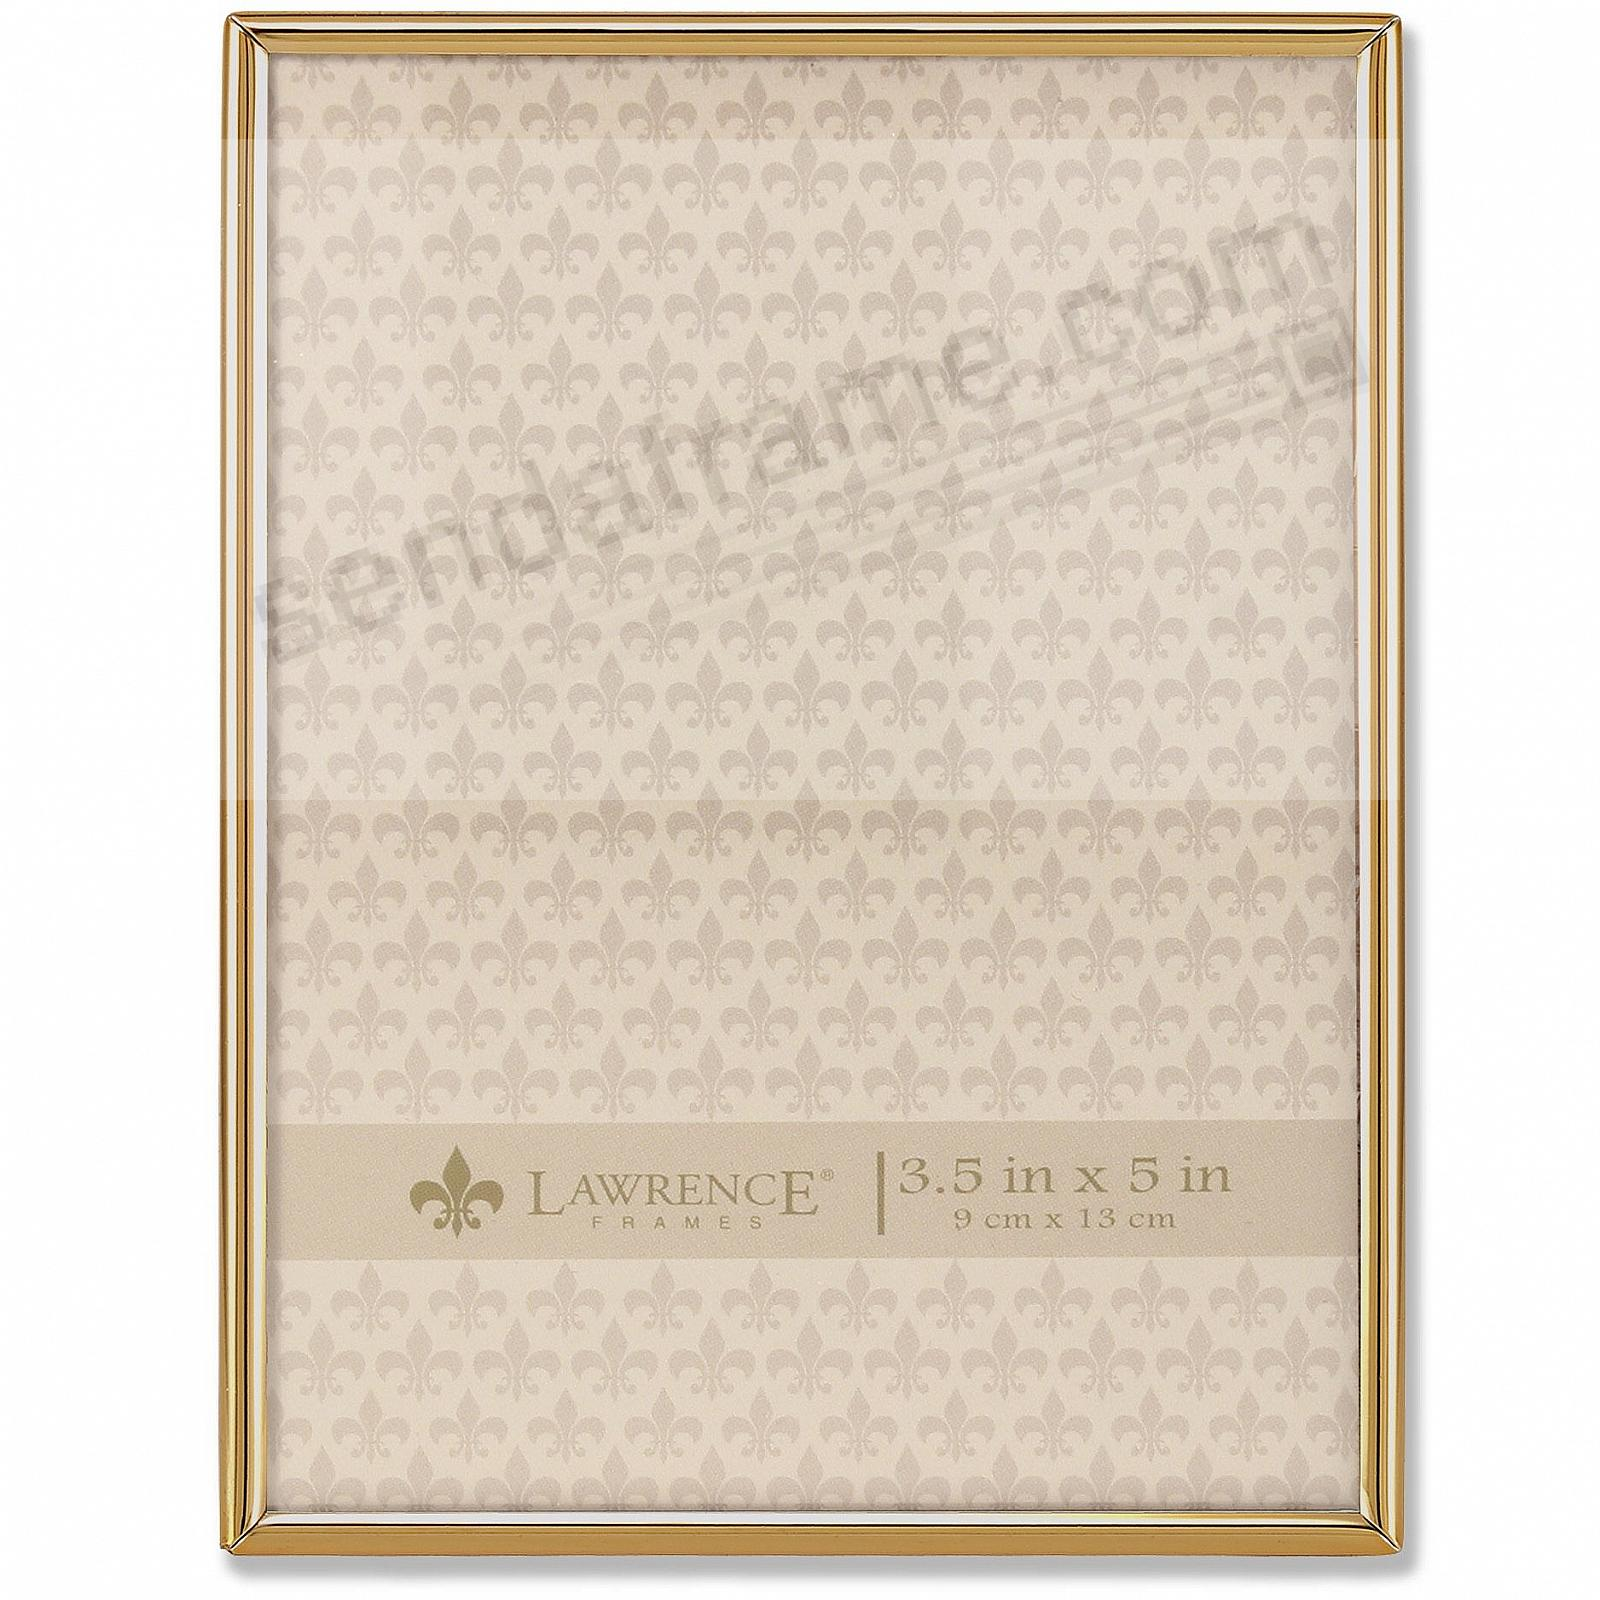 Polished SIMPLY GOLD 3½x5 frame by Lawrence®